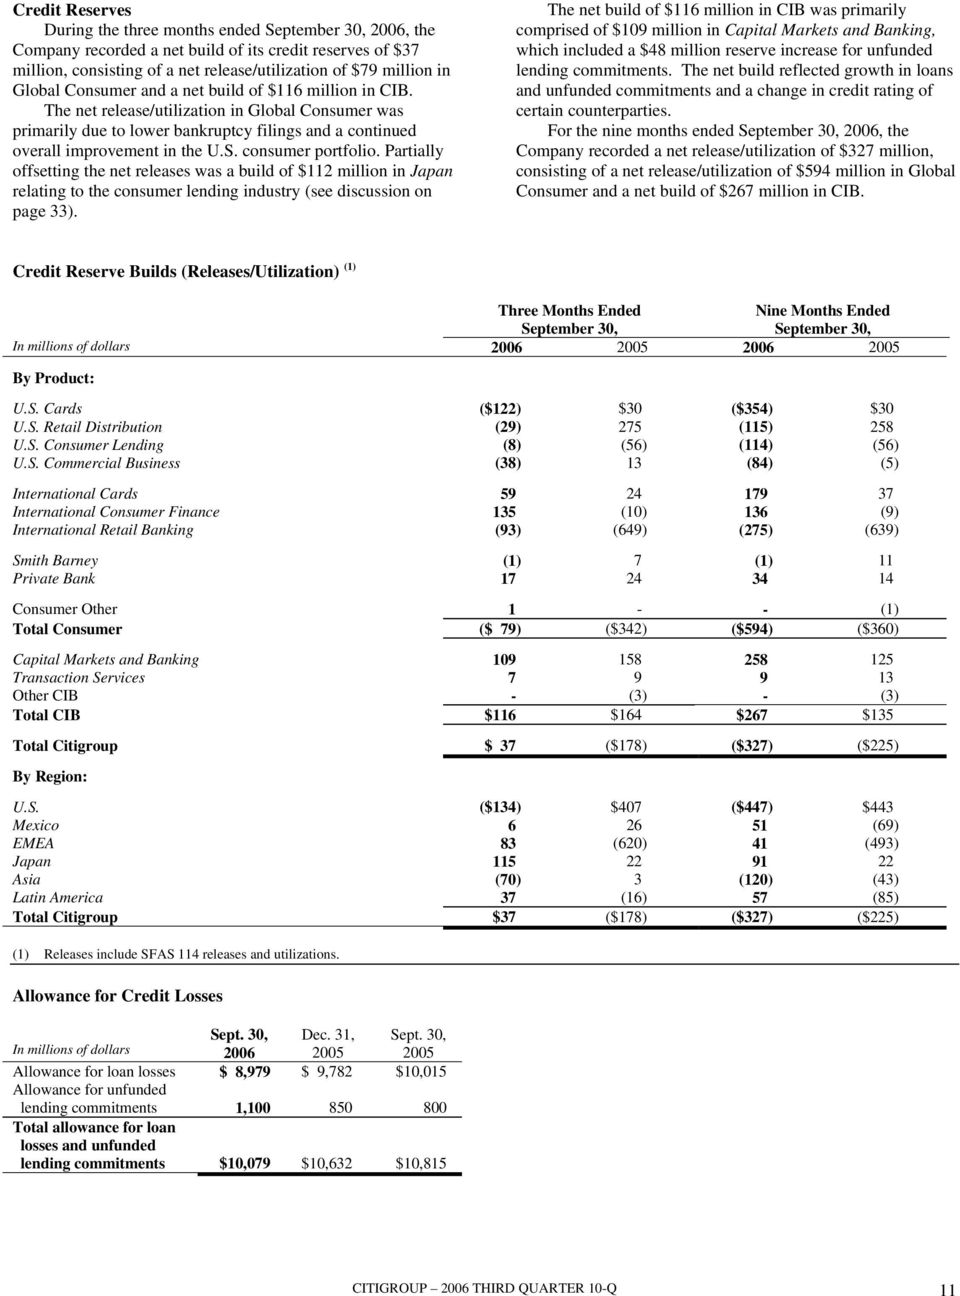 consumer portfolio. Partially offsetting the net releases was a build of $112 million in Japan relating to the consumer lending industry (see discussion on page 33).